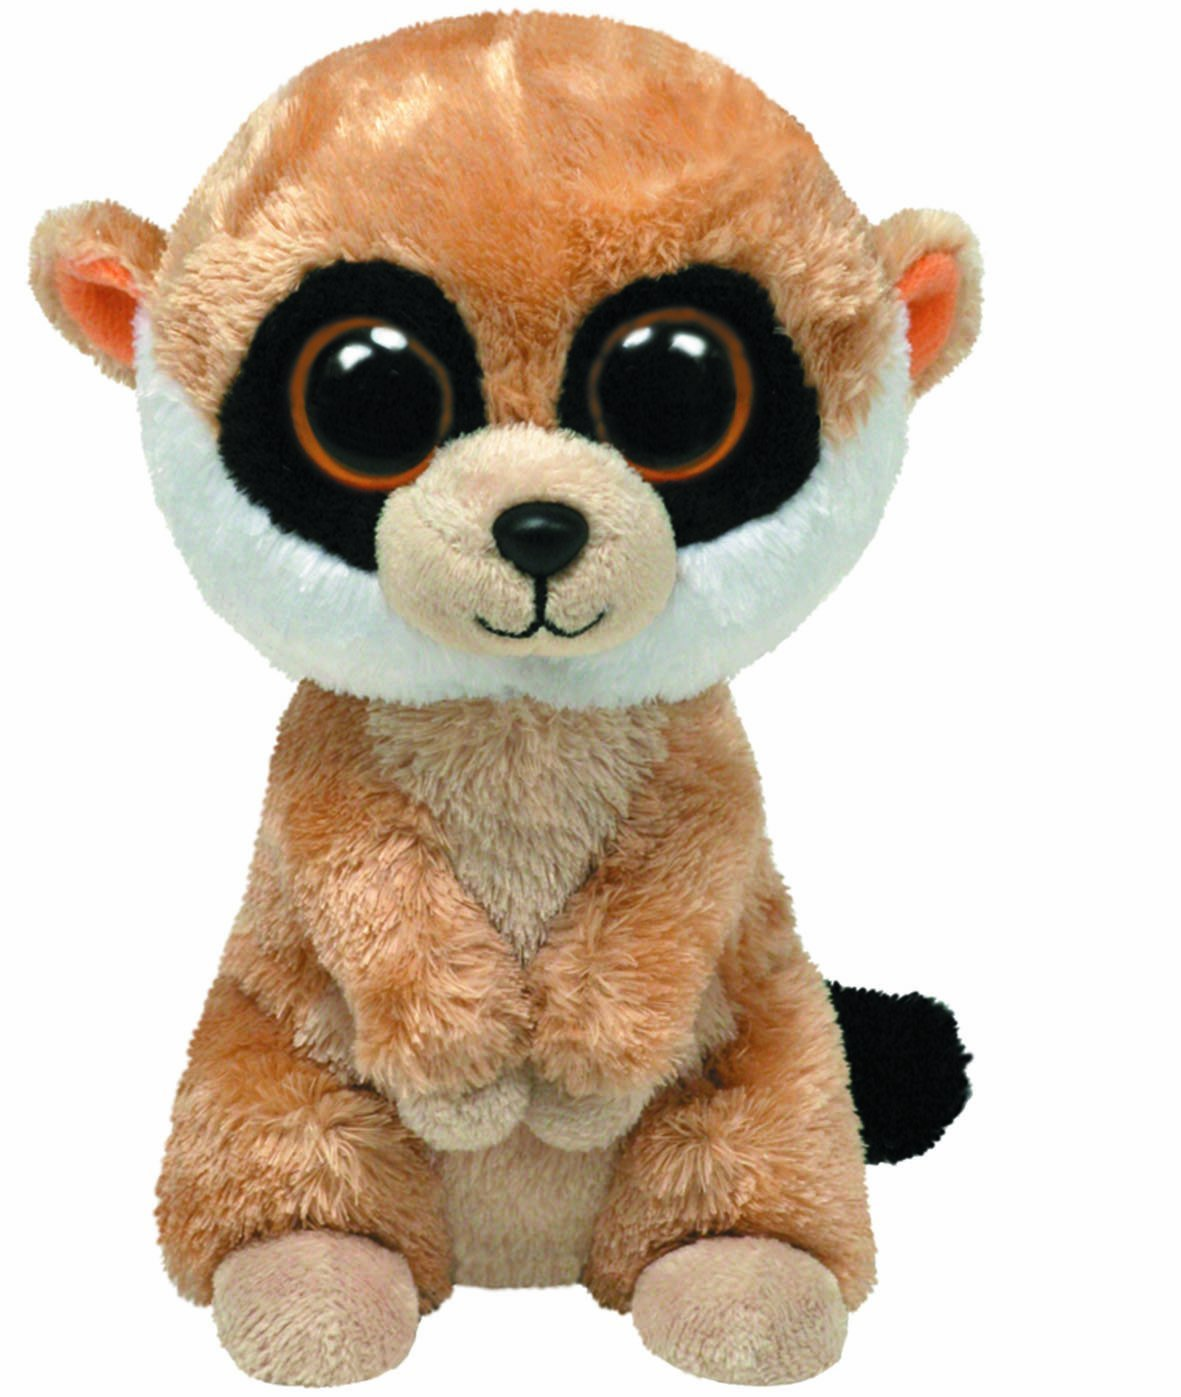 Beanie Boos Pics, Products Collection